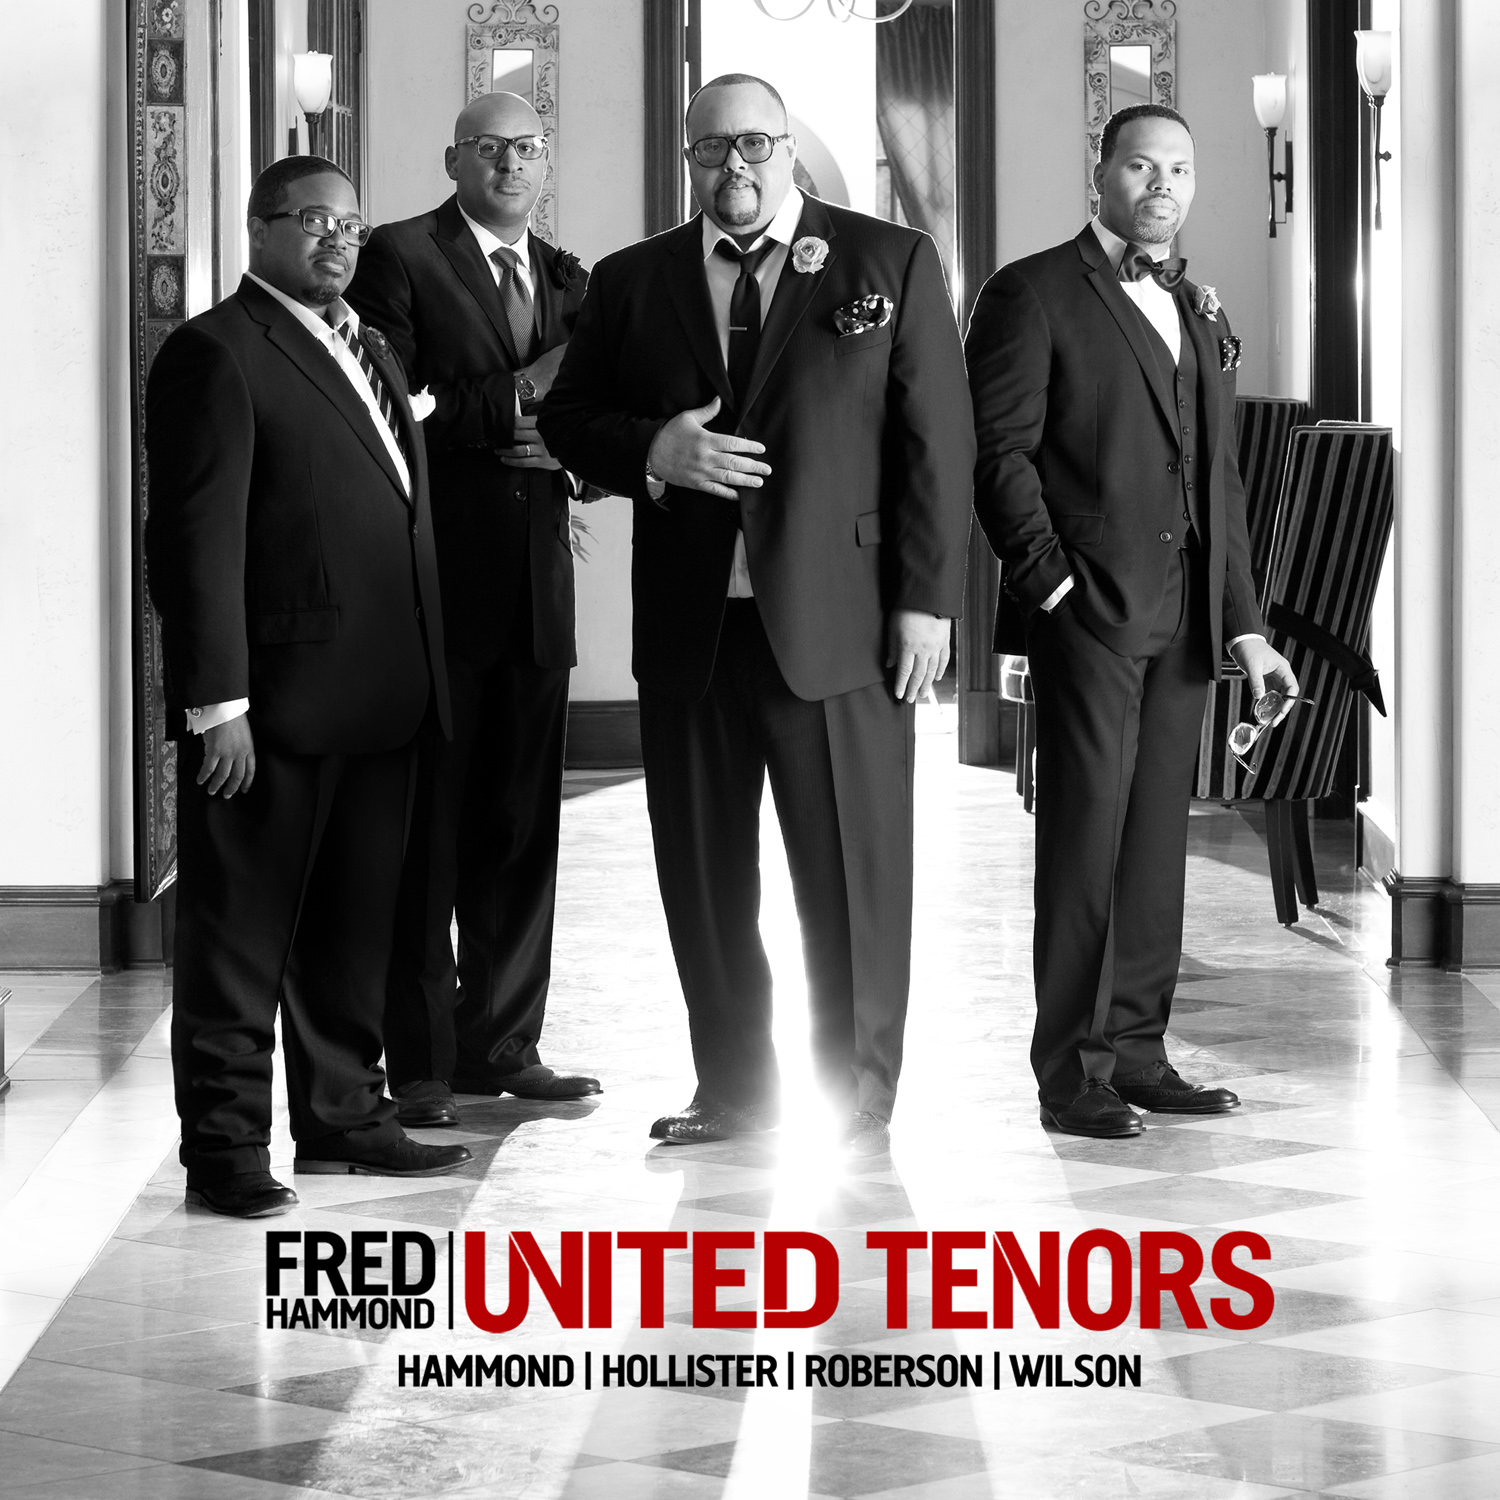 b1f4f196aa015854396e0dc91705a04e Competition: Win Fred Hammond & United Tenors New CD